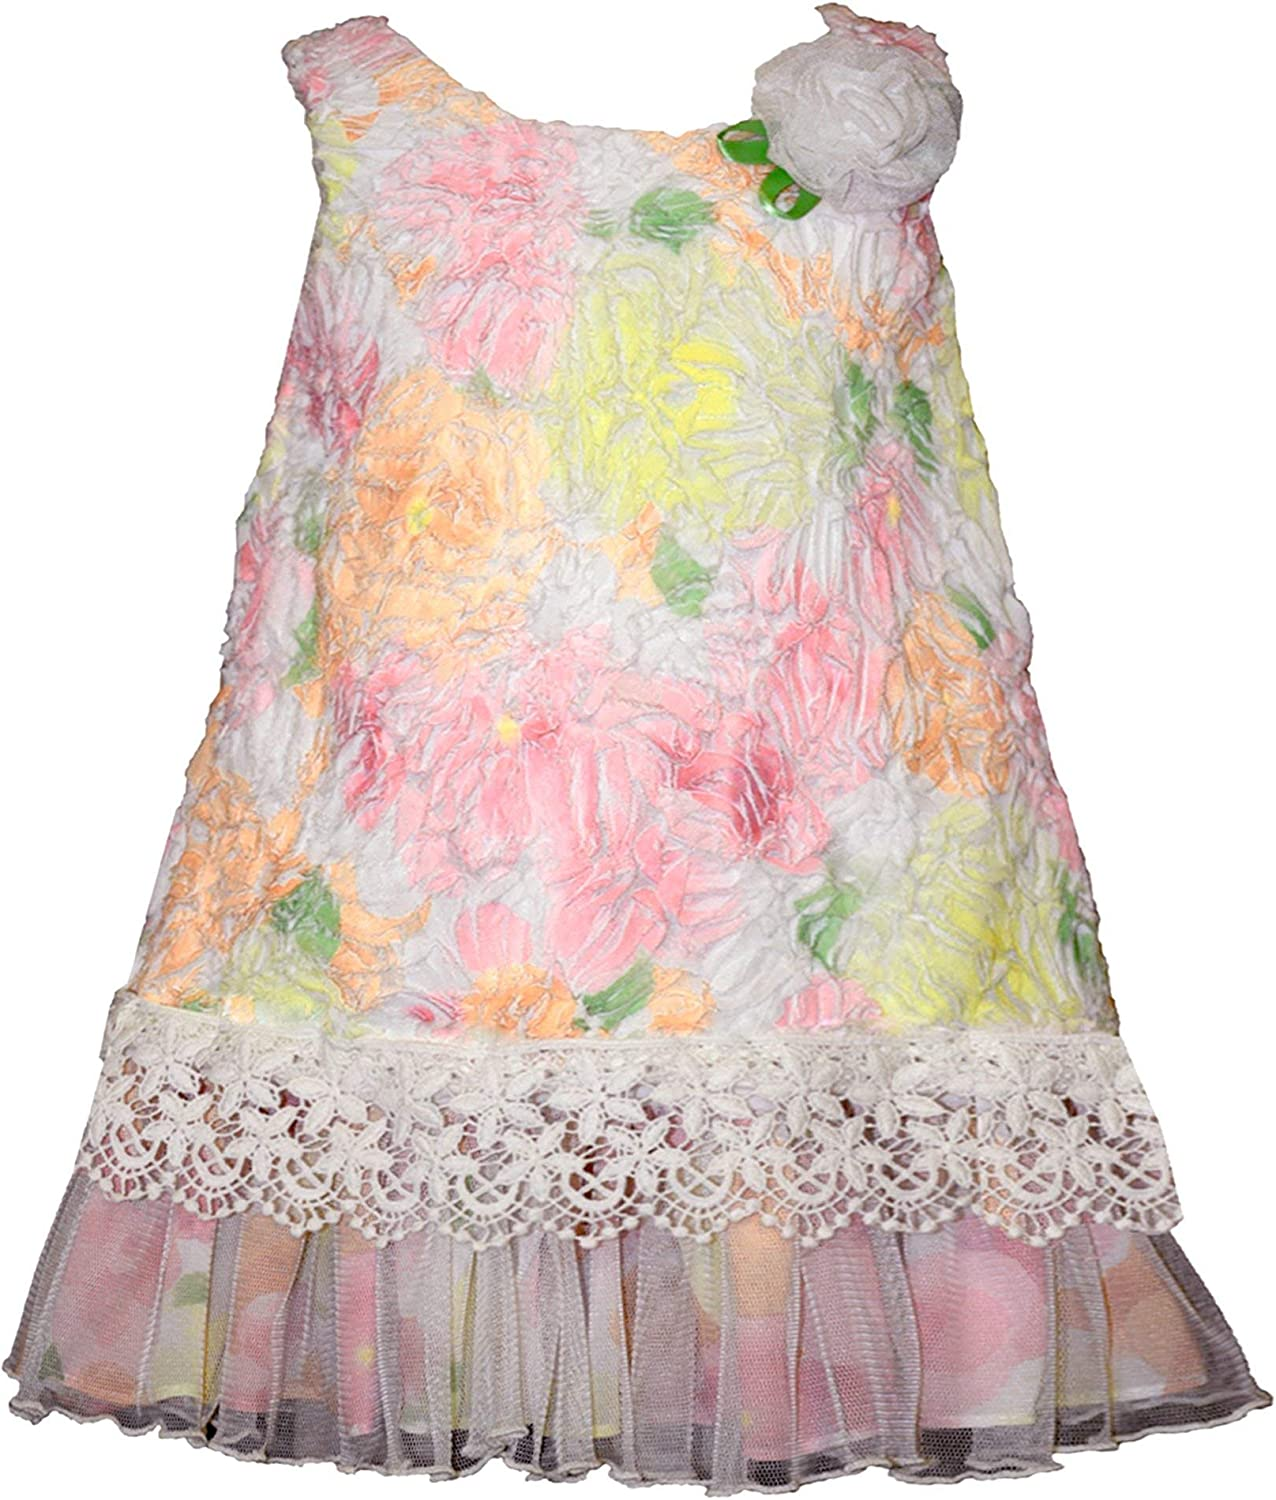 Bonnie NEW before selling ☆ Jean Baby-Toddler-Little Girls Flounce Party 4 years warranty Dress